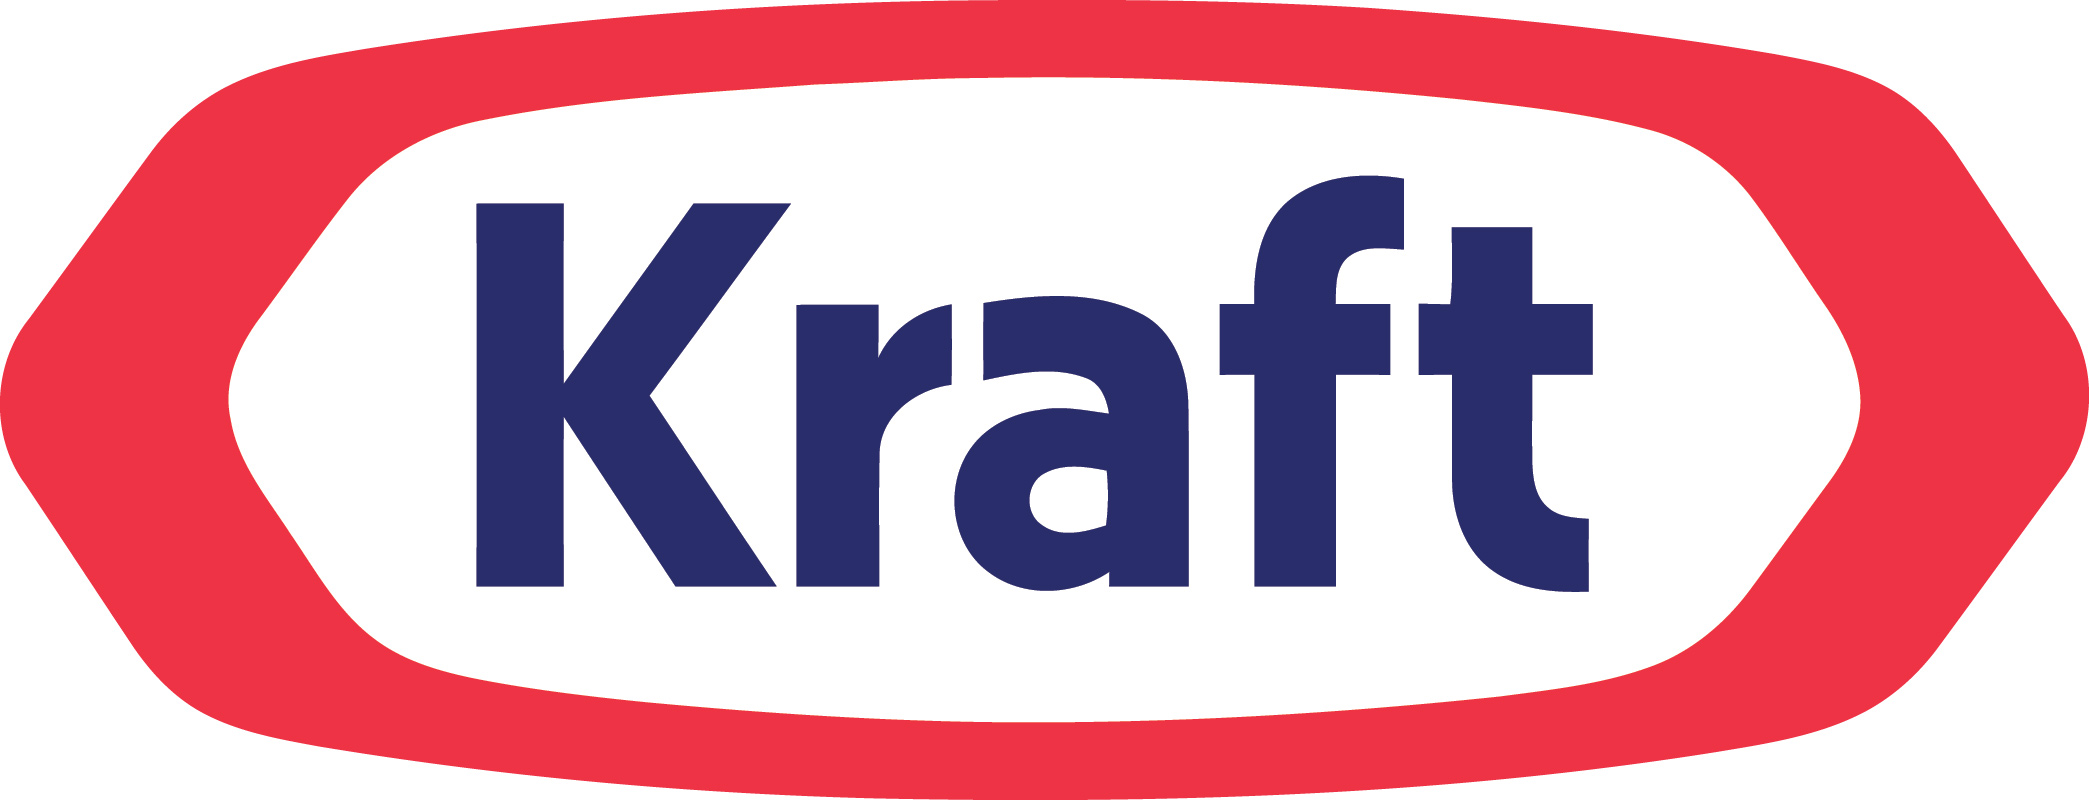 https://www.ingeser.es/wp-content/uploads/2021/03/kraft-logo-large.jpg